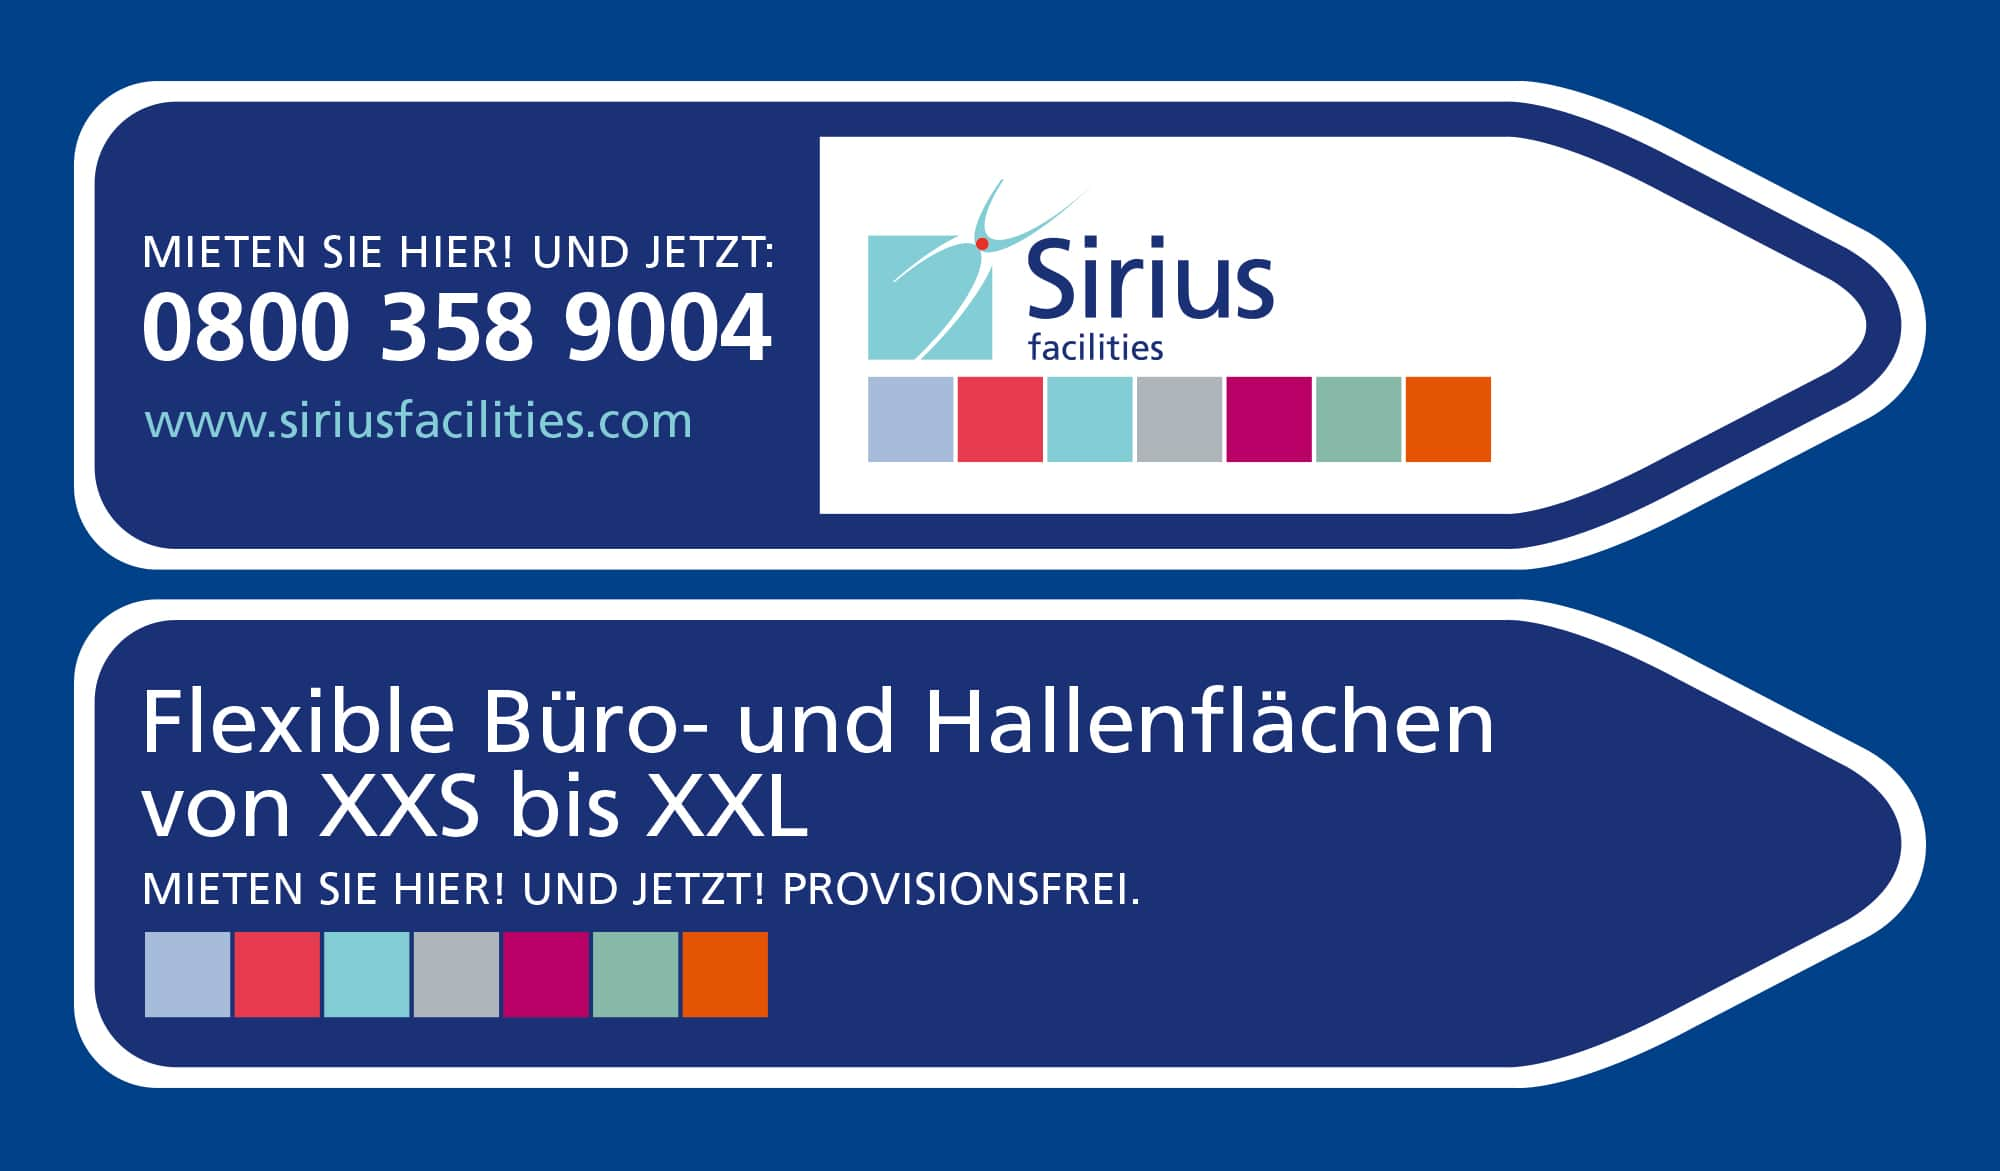 Sirius Facilities external signage